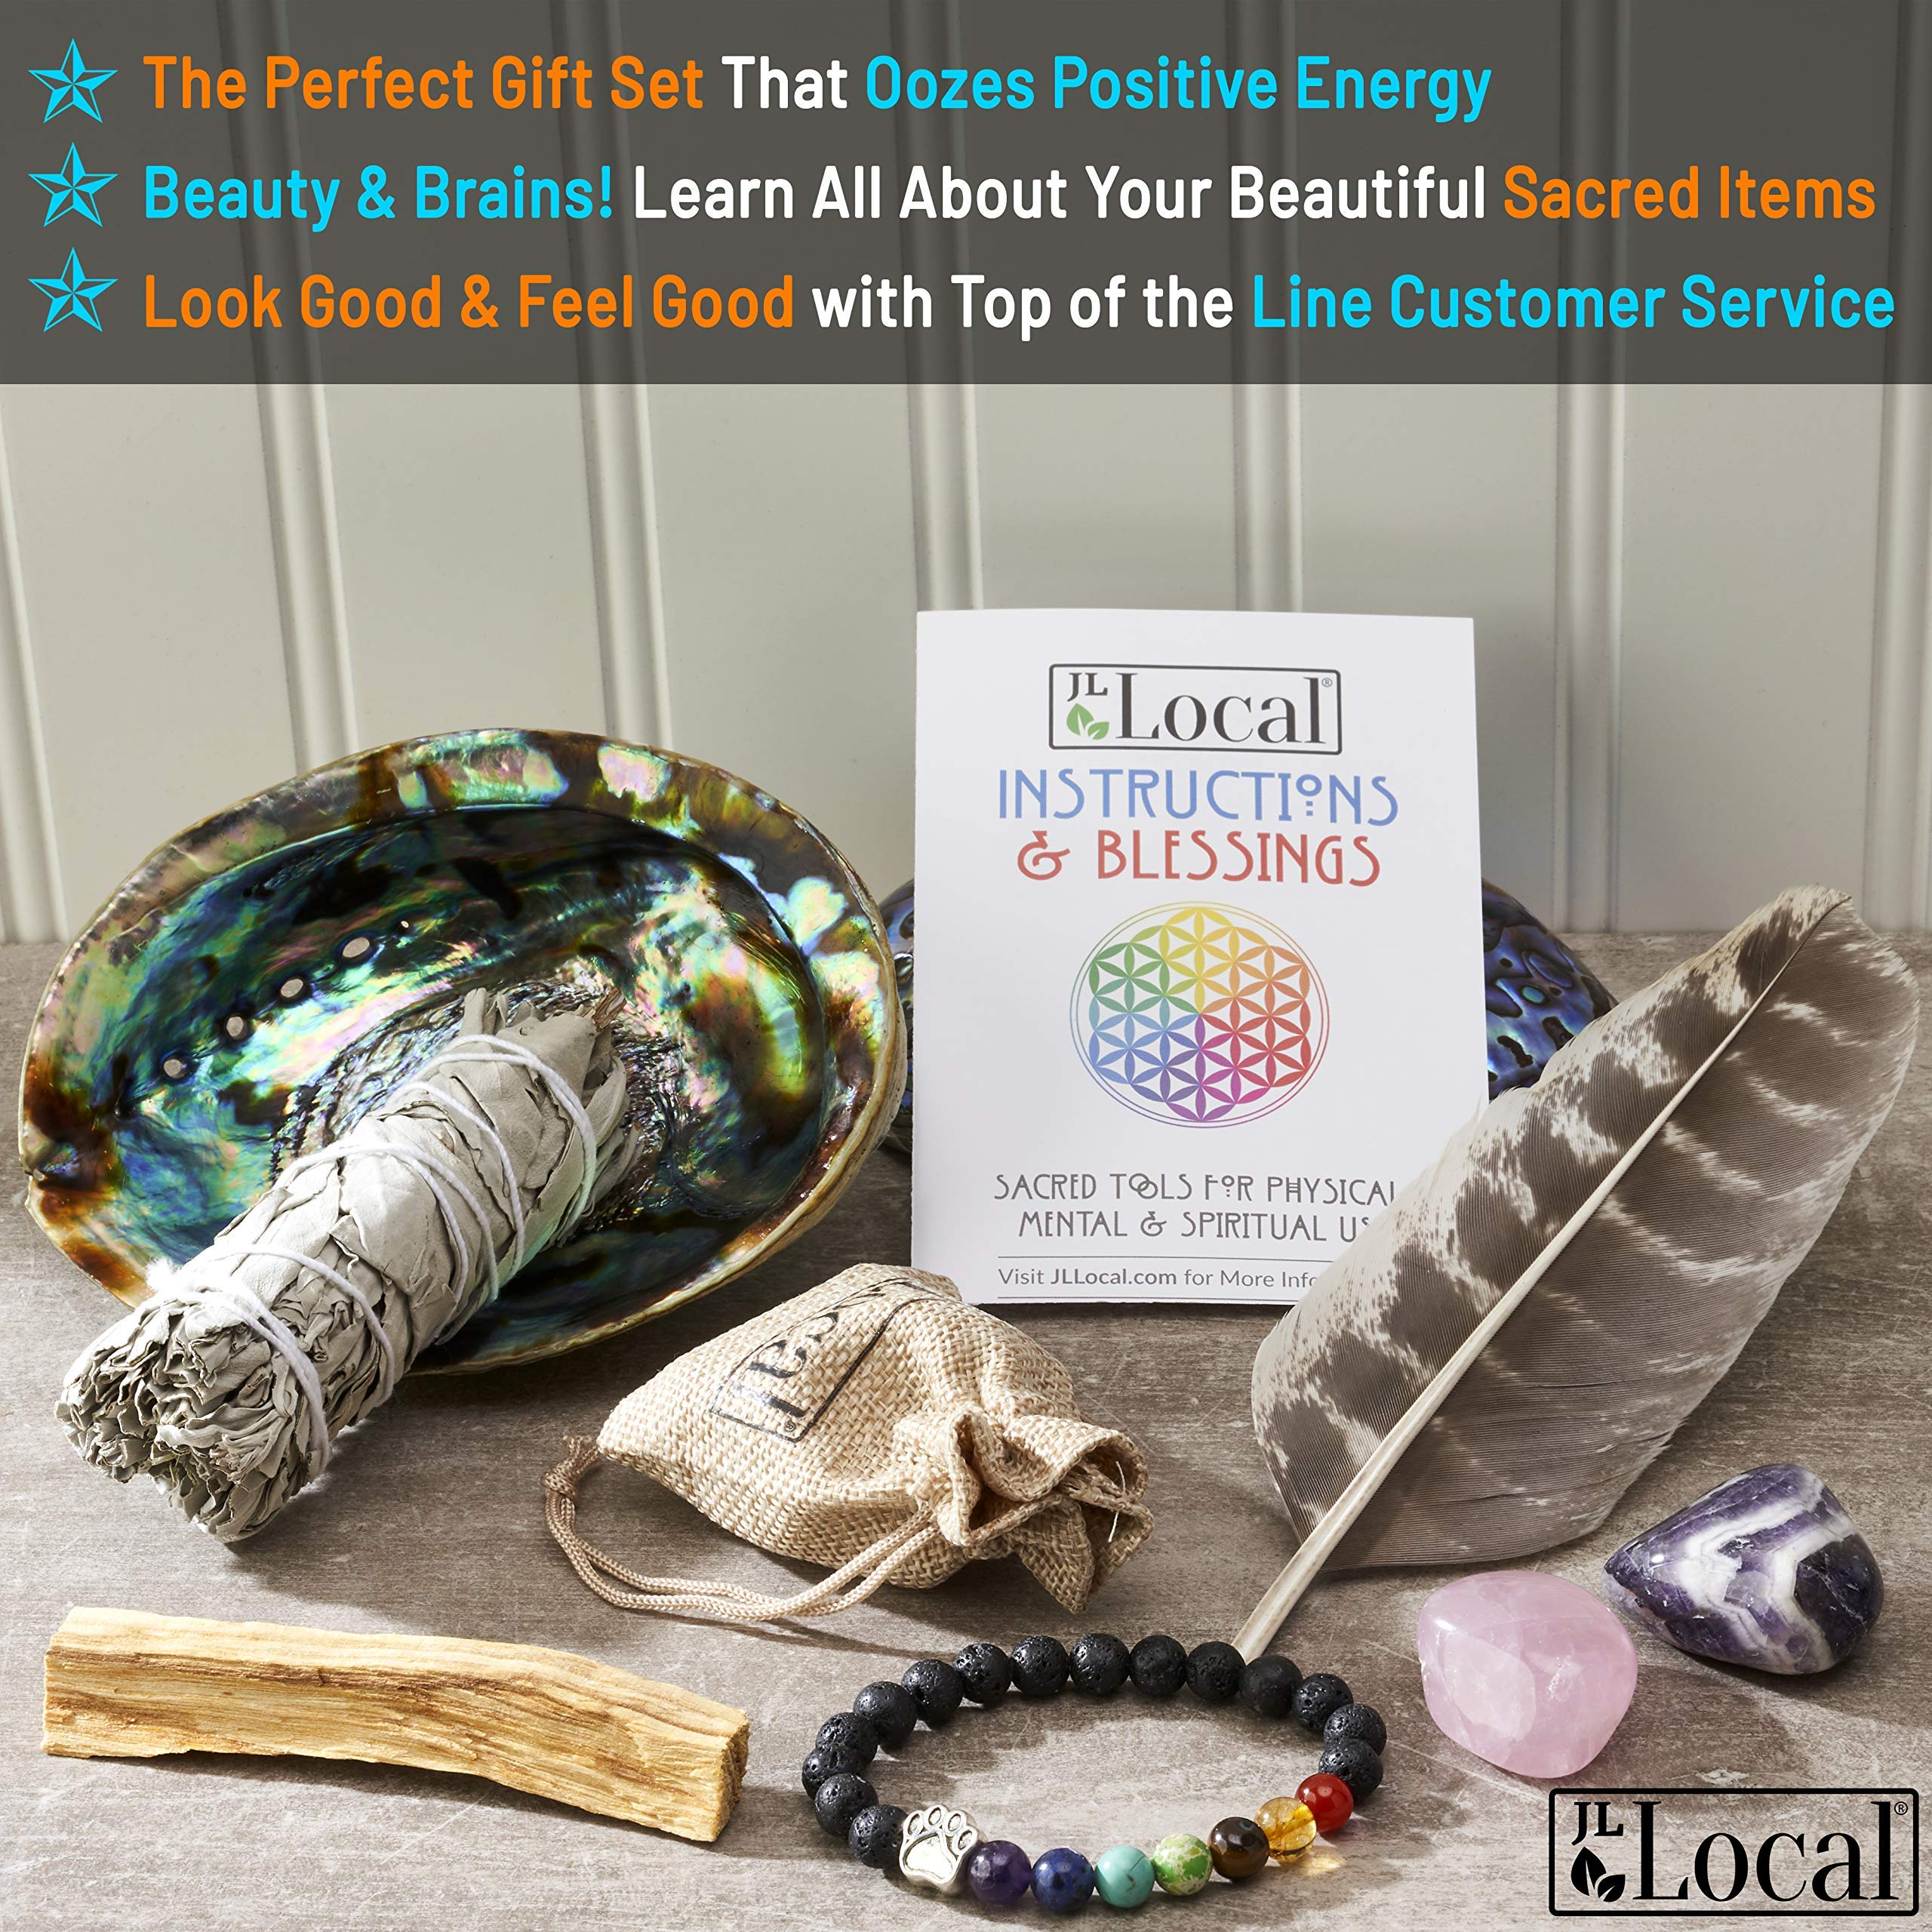 JL Local Chakra Smudging Kit - 10 Items Including White Sage Smudge Sticks, Palo Santo, Amethyst, Rose Quartz, Abalone Shell, Stand & Gift by JL Local (Image #2)